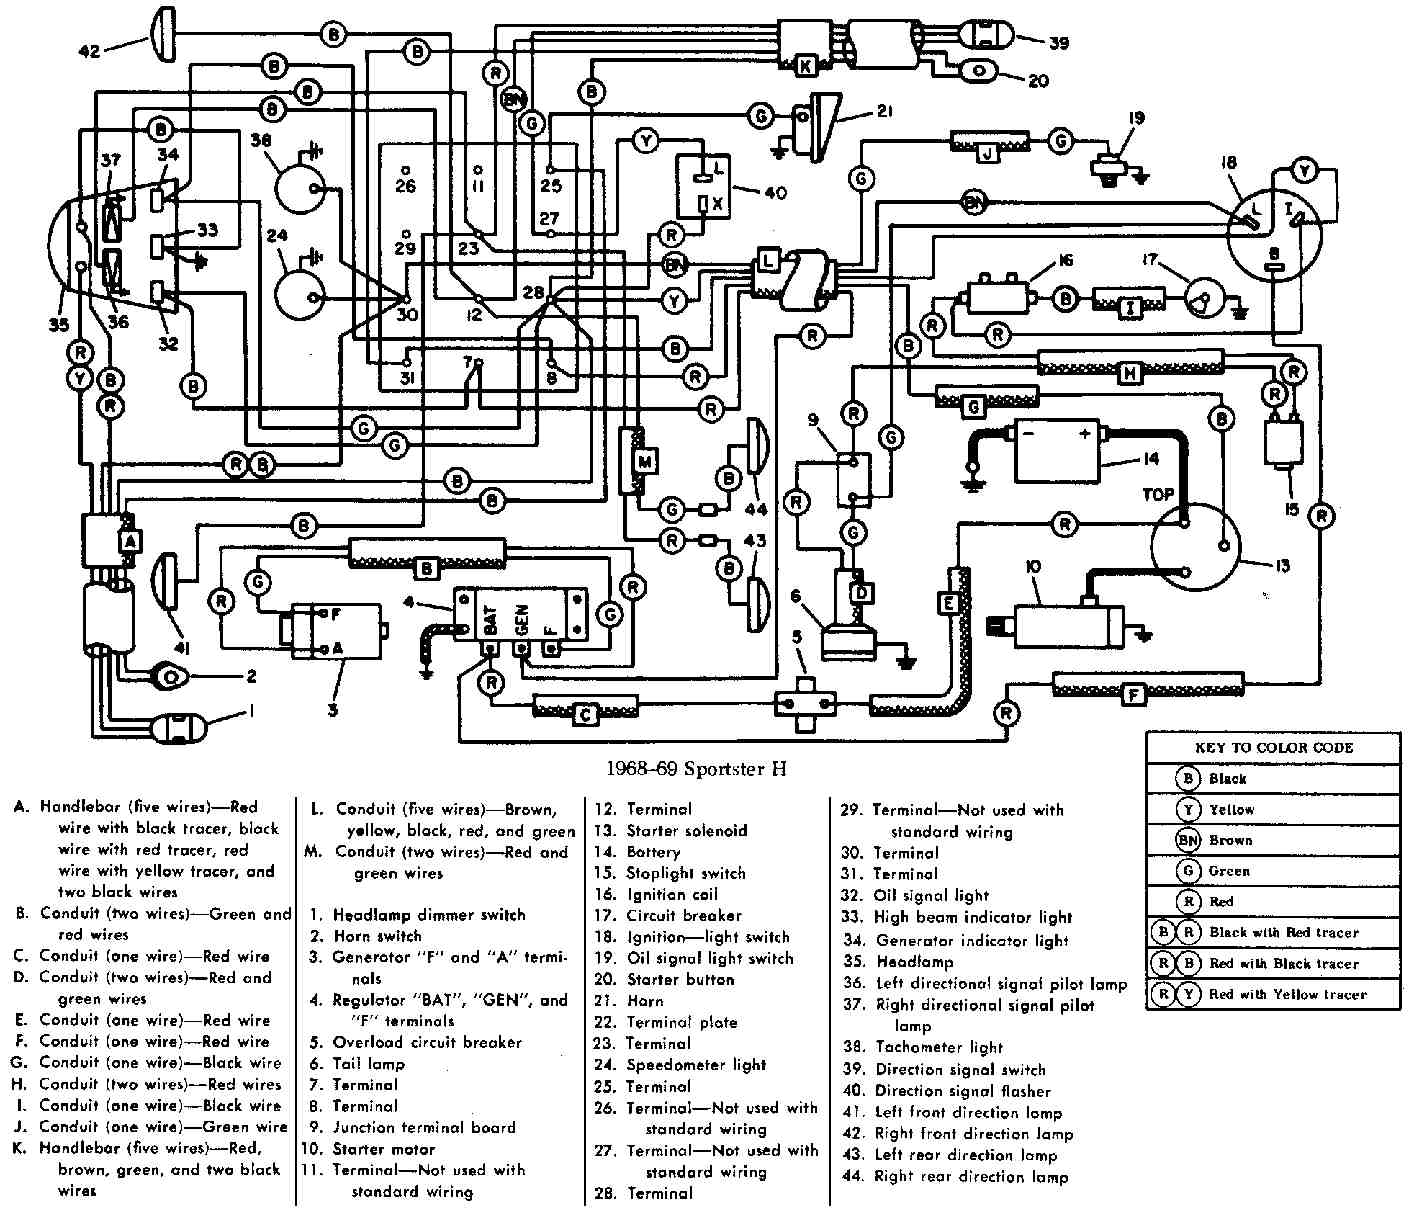 peterbilt tail light wiring diagram with Harley Davidson Sportster 1968 1969 on 89xy6 Engine Won T Start Stop Engine L  Not Turning together with 259846 Sucro Relay Kit 2 as well 2002 Ta a 4x4 Highbeam Question 50592 further Harley Davidson Sportster 1968 1969 in addition Peterbilt 387 Fuse Box Cover.